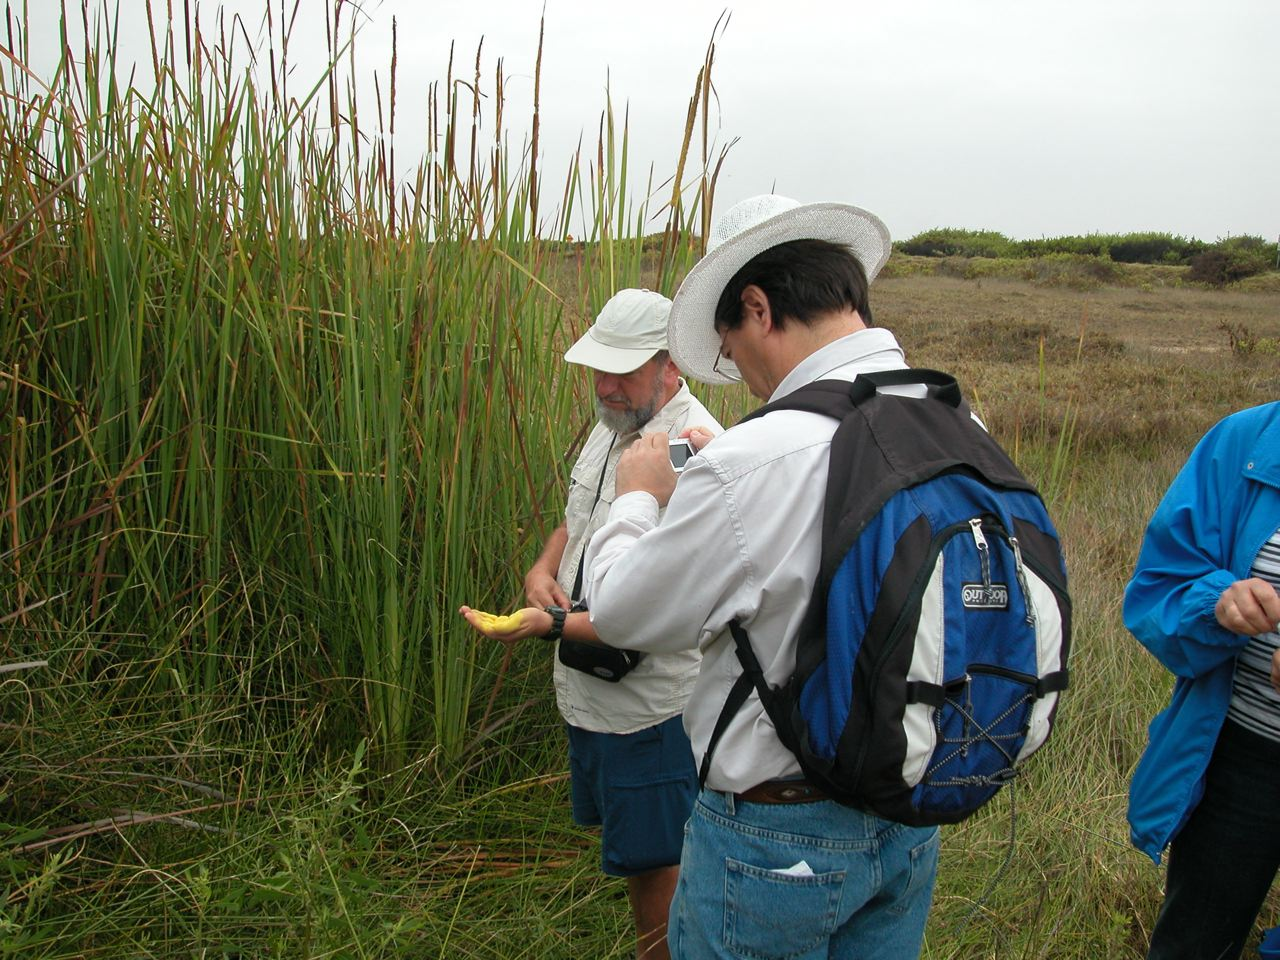 Bernardo Arriaza and Karl Reinhard exploring the pollen production of cattails in the Atacama Desert, Chile